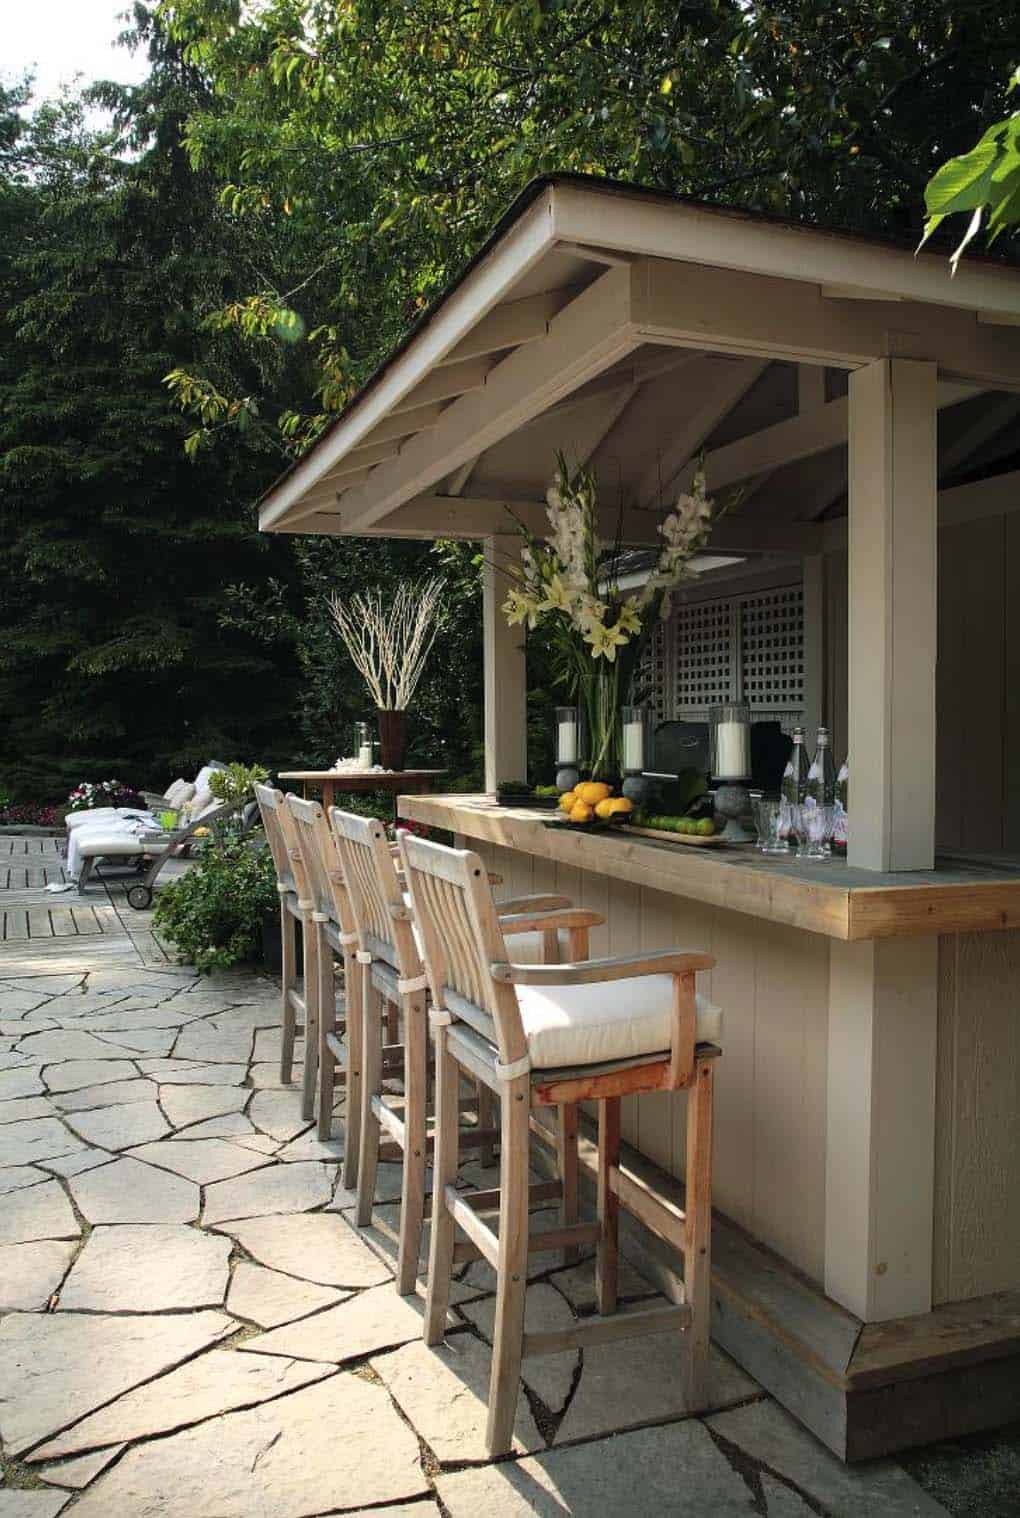 Spectacular Outdoor Kitchens With Bars, Pictures Of Outdoor Kitchens And Bars